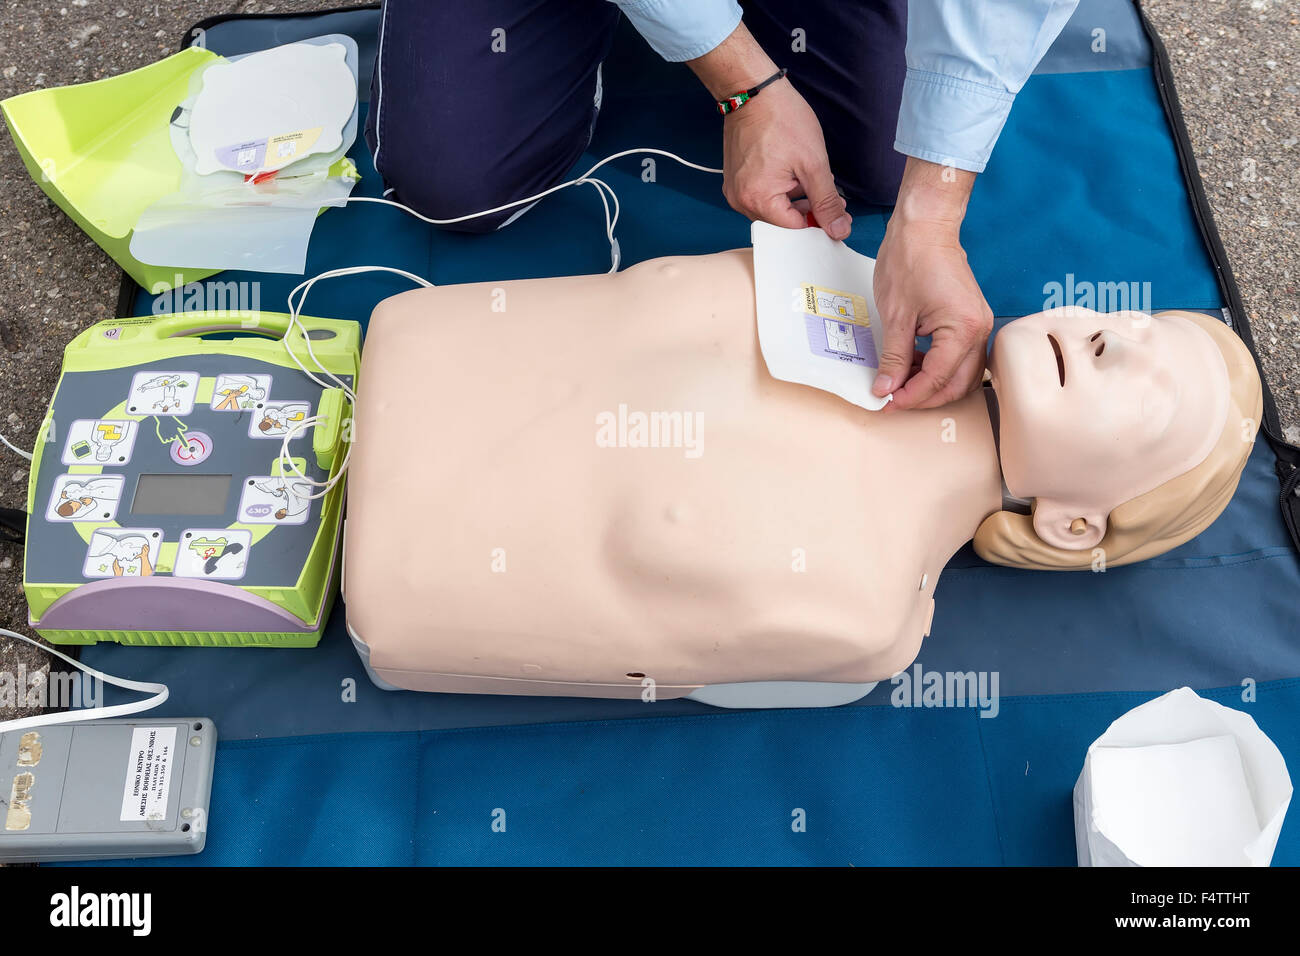 Thessaloniki greece oktober16 2015 the instructor showing cpr stock photo thessaloniki greece oktober16 2015 the instructor showing cpr on training doll free first aid cpr lessons given in the cent xflitez Gallery